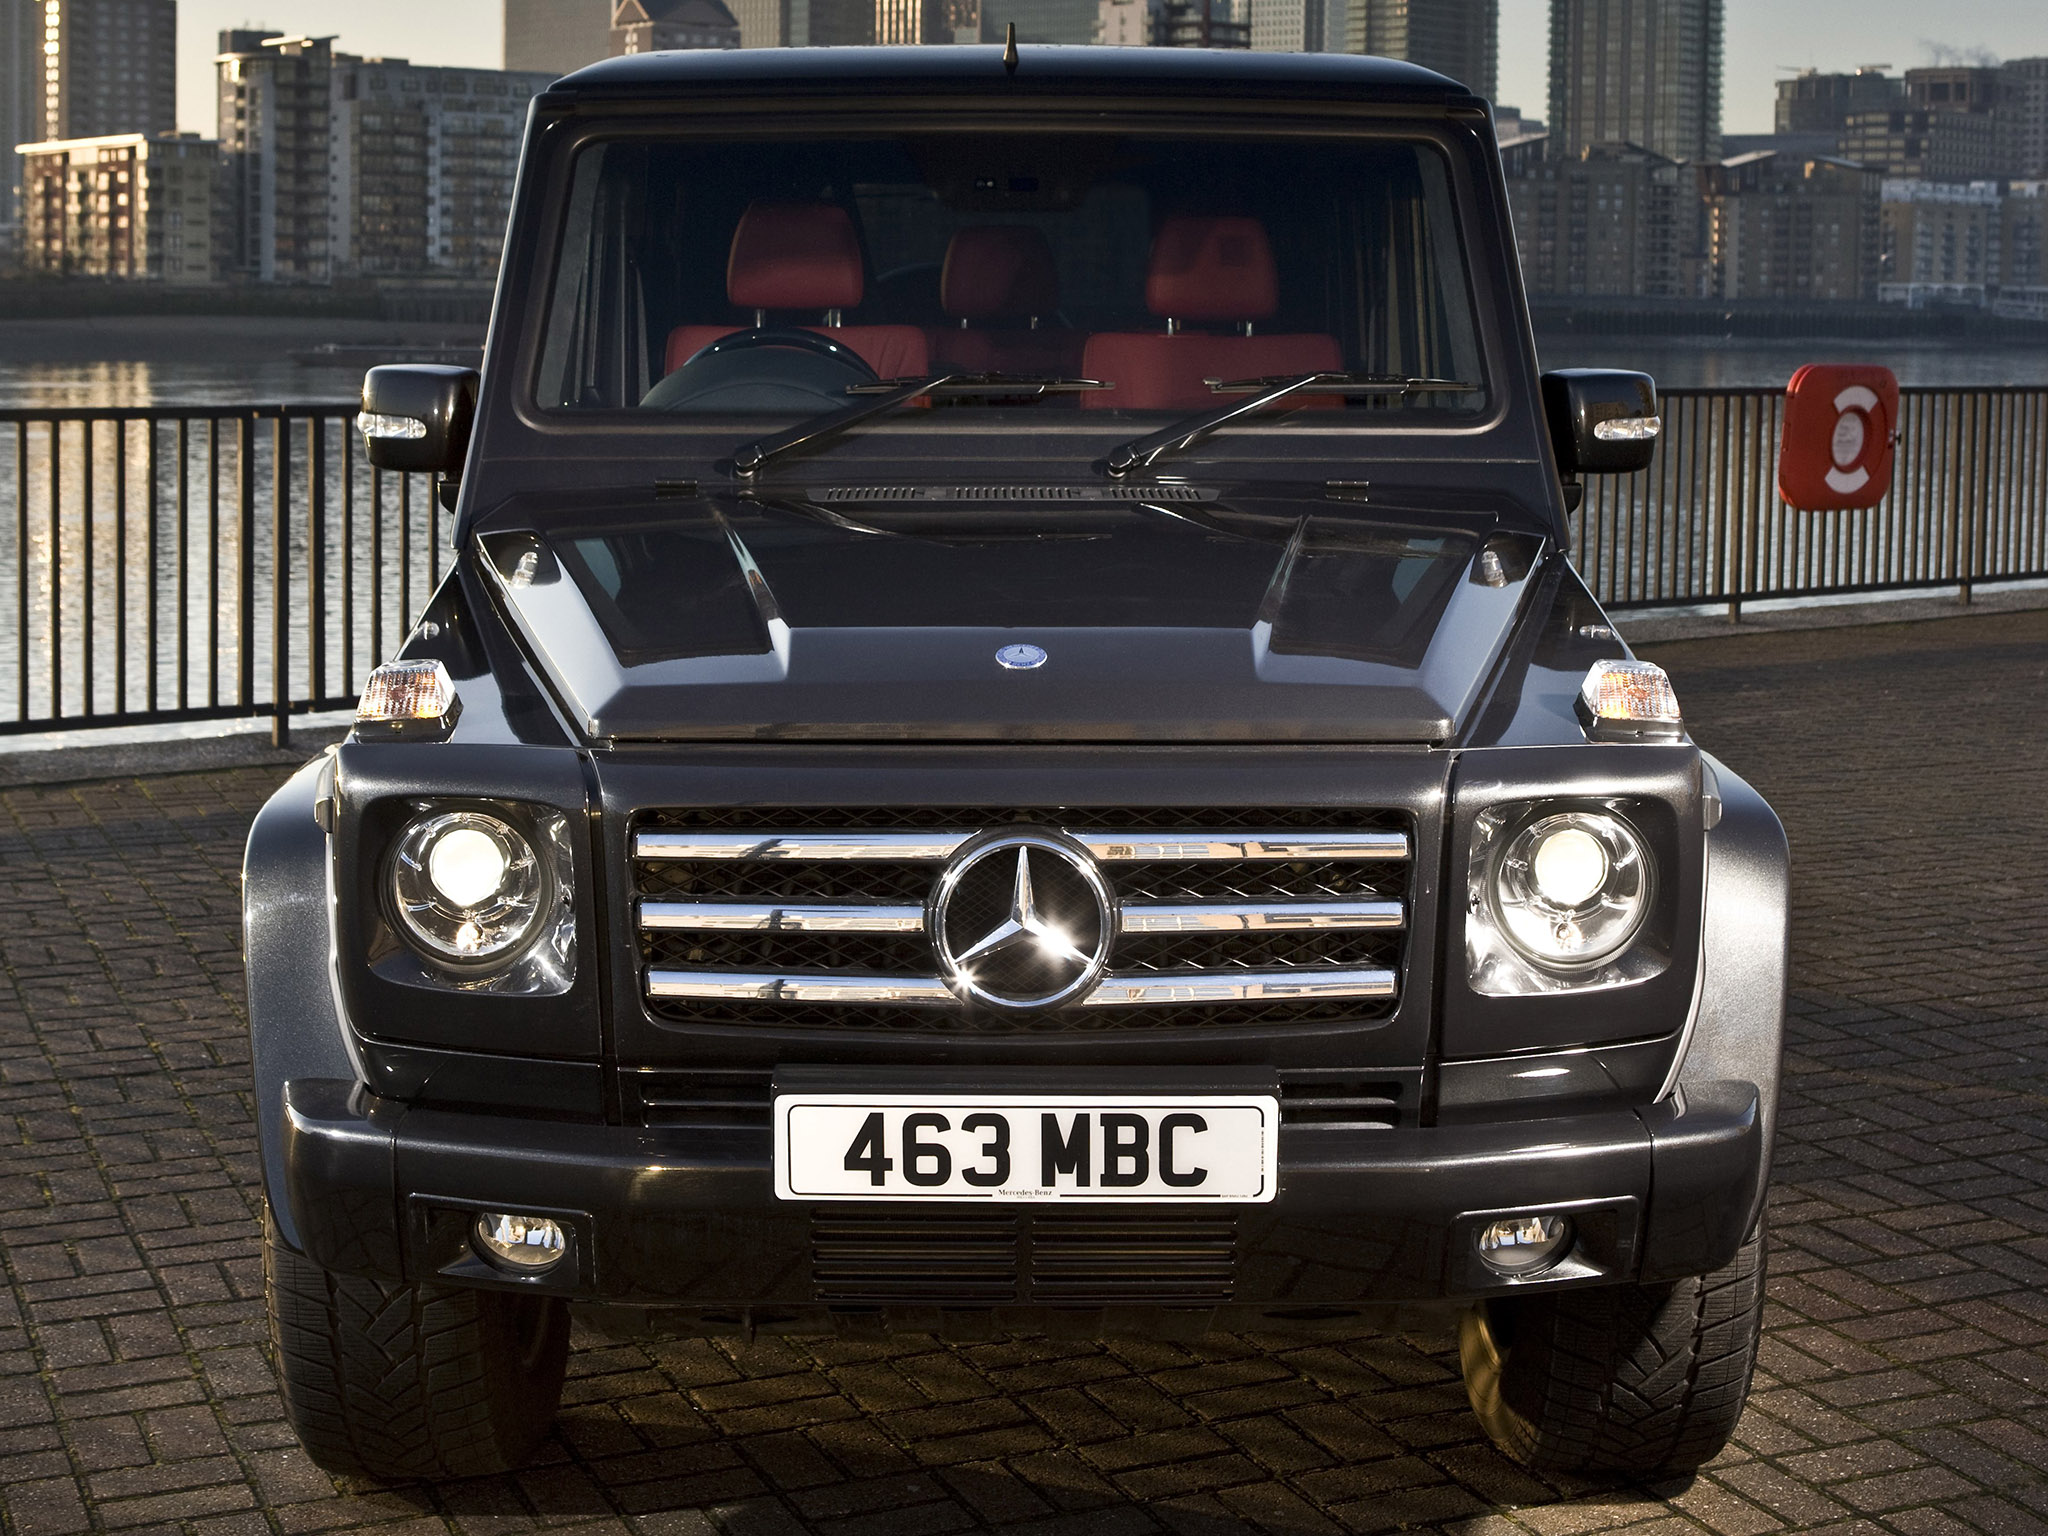 amg mercedes g klasse g55 uk 2010 amg mercedes g klasse g55 uk 2010 photo 13 car in pictures. Black Bedroom Furniture Sets. Home Design Ideas